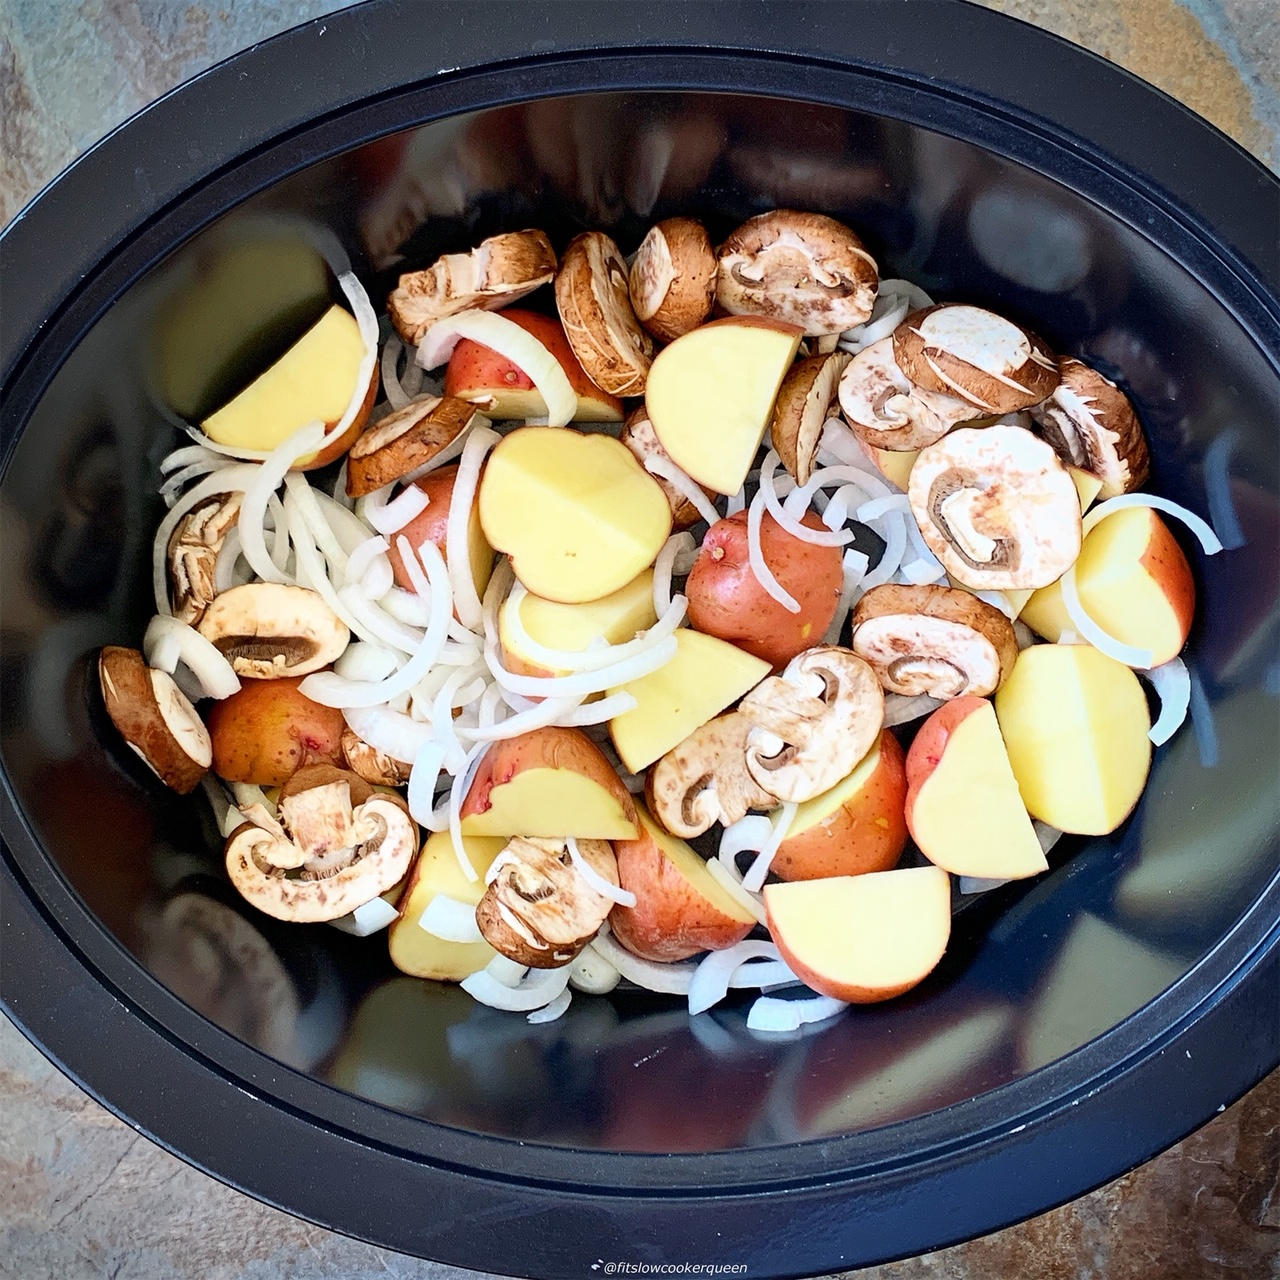 slow cooker full of potatoes, onions, and mushrooms